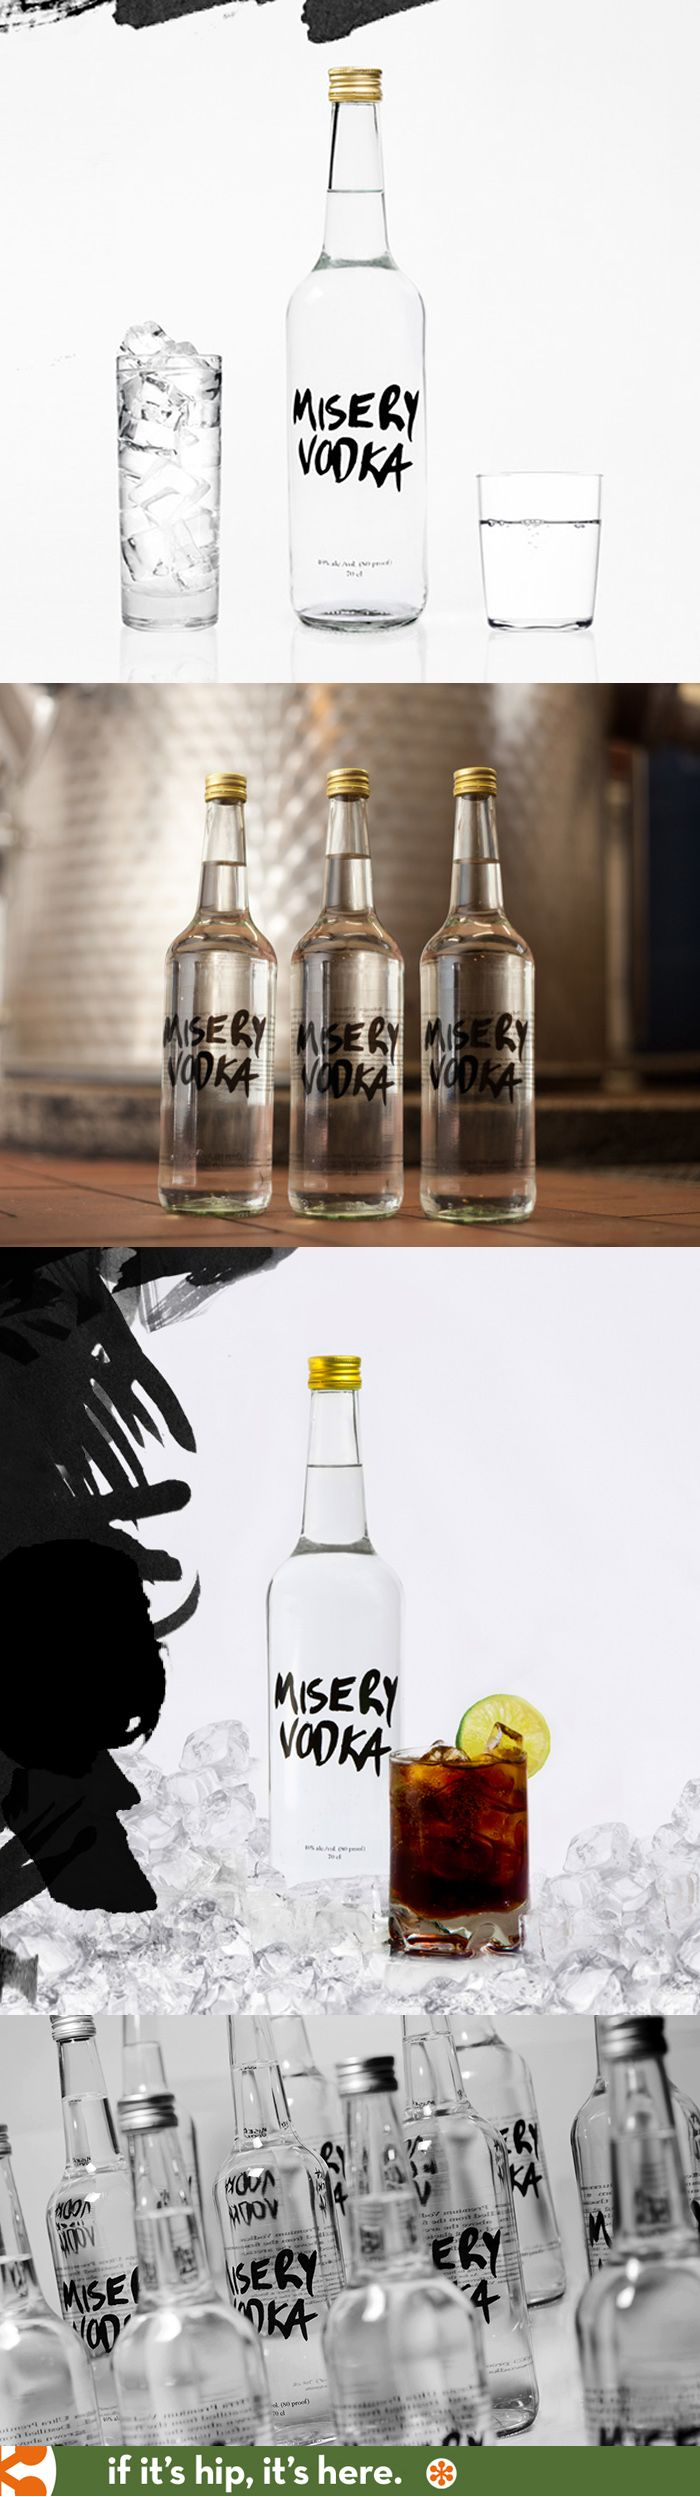 Misery Vodka bottle design by Studio Total of Sweden.